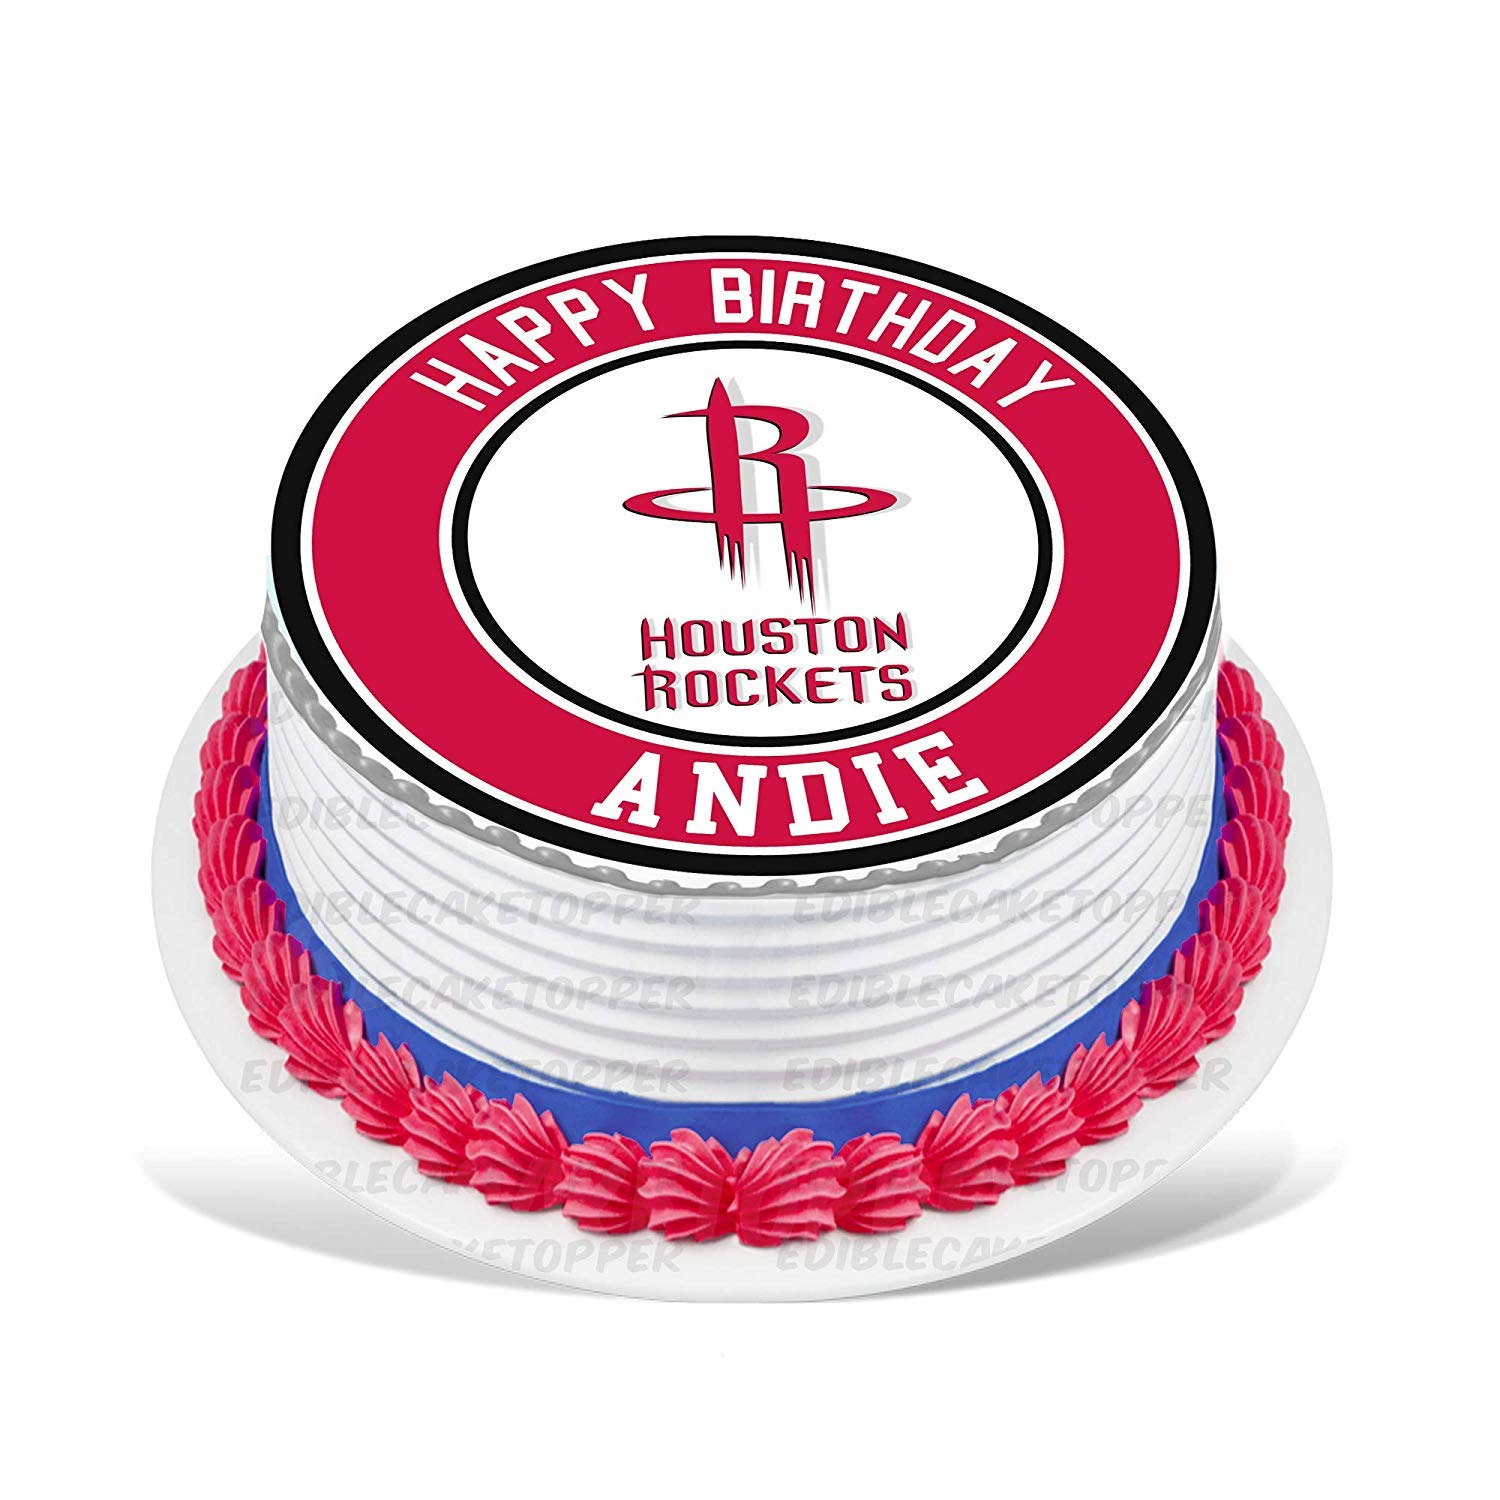 Rockets Edible Cake Topper Personalized Birthday 10 Round Circle Decoration Party Sugar Frosting Transfer Fondant Image Best Quality